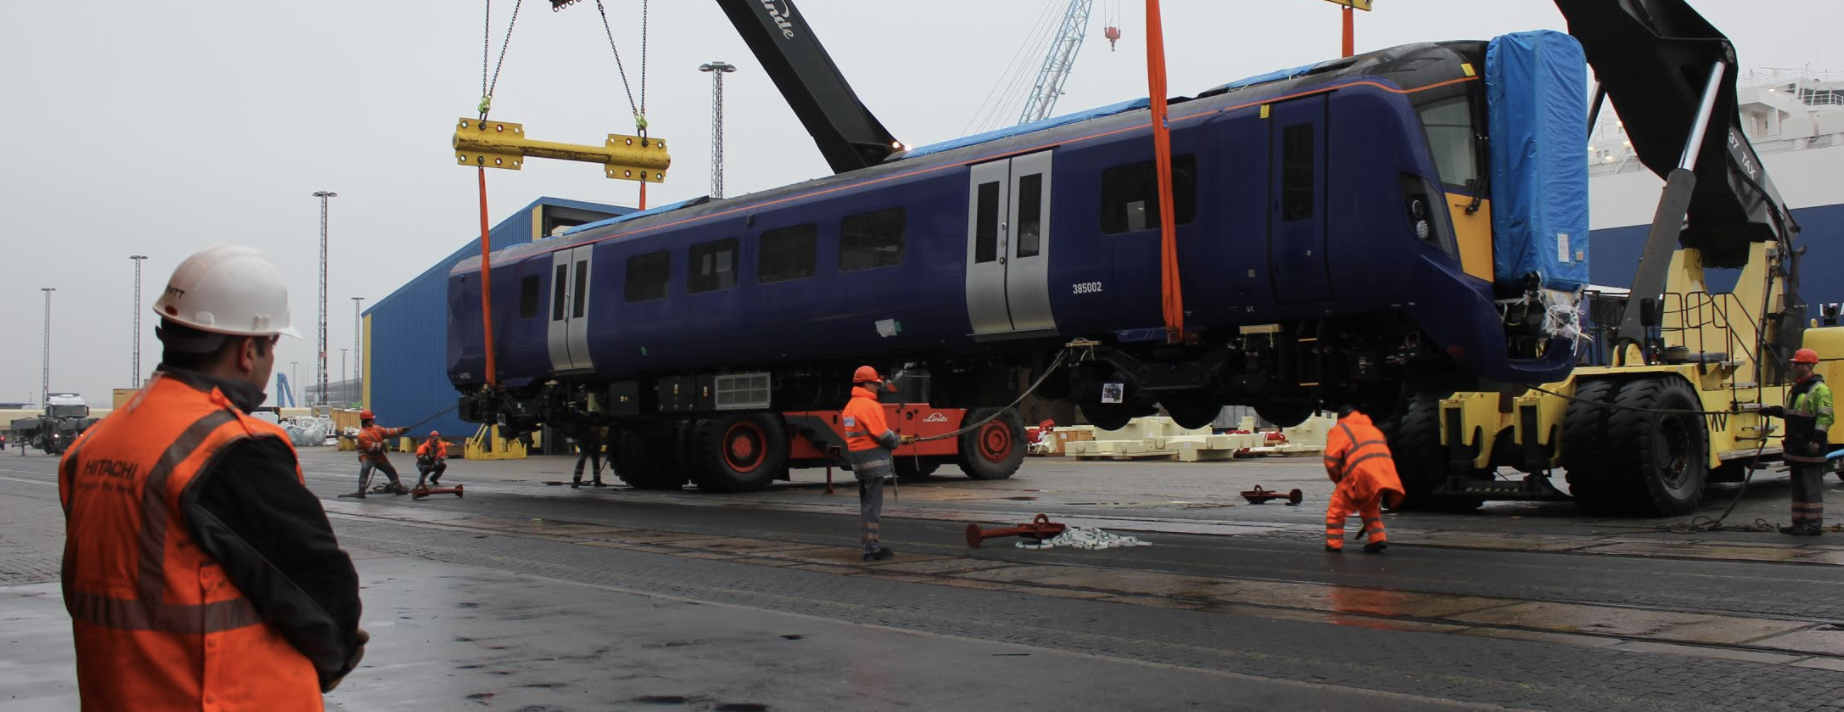 Transporting and reforming of rolling stock